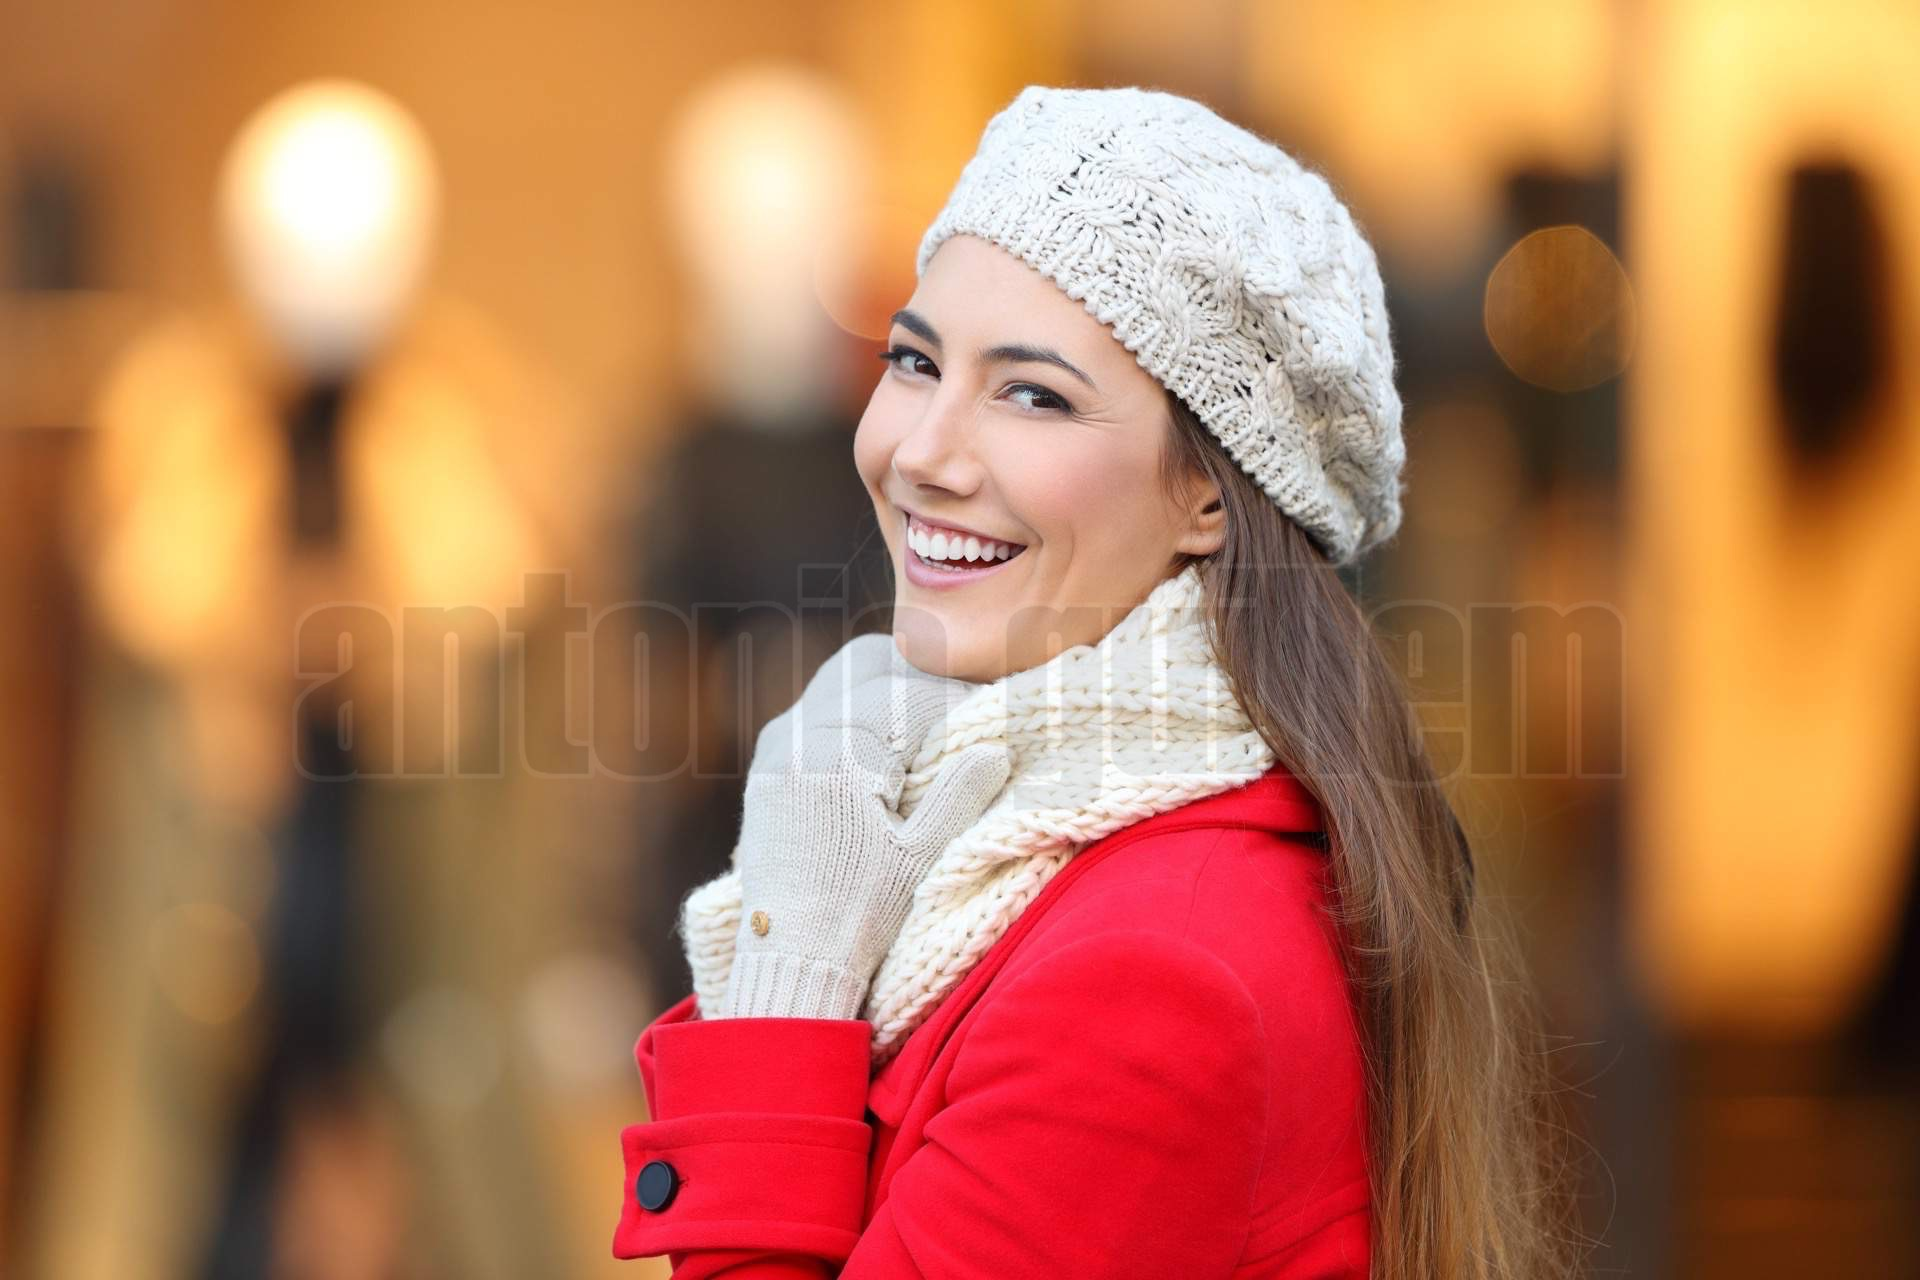 Woman smiling at camera in winter in a mall